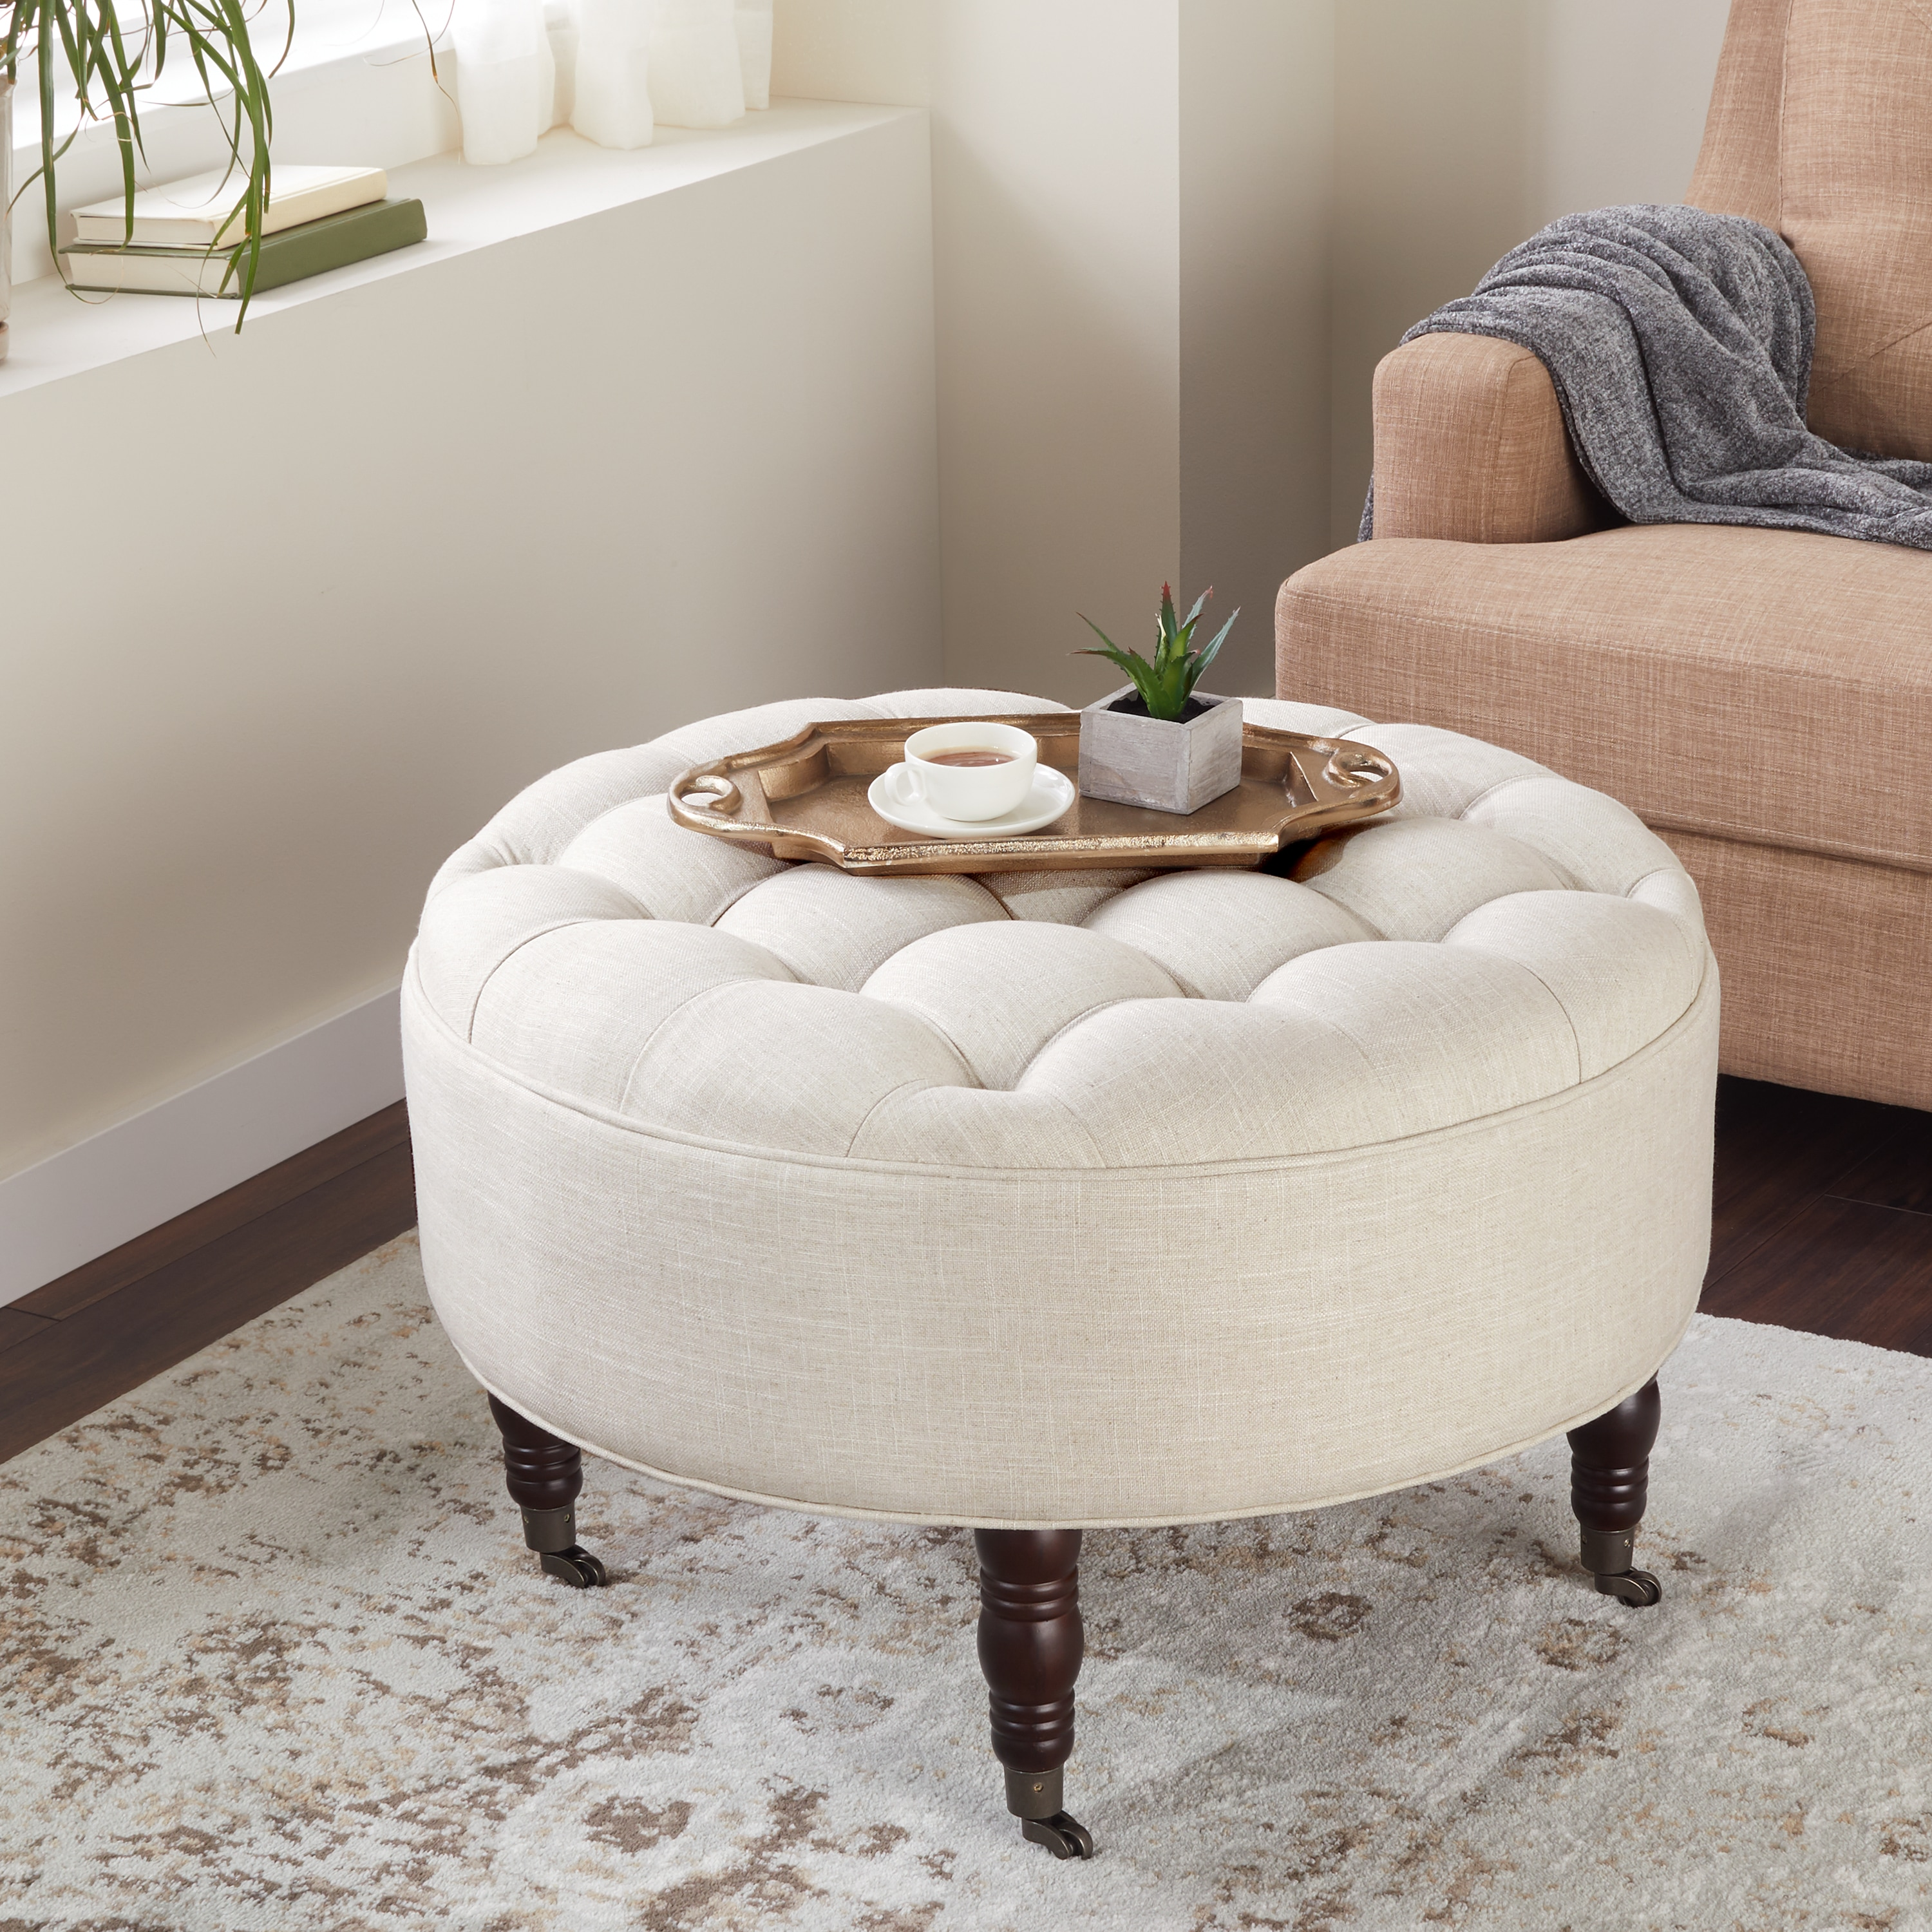 Miraculous Abbyson Clarence Tufted Round Ottoman Andrewgaddart Wooden Chair Designs For Living Room Andrewgaddartcom